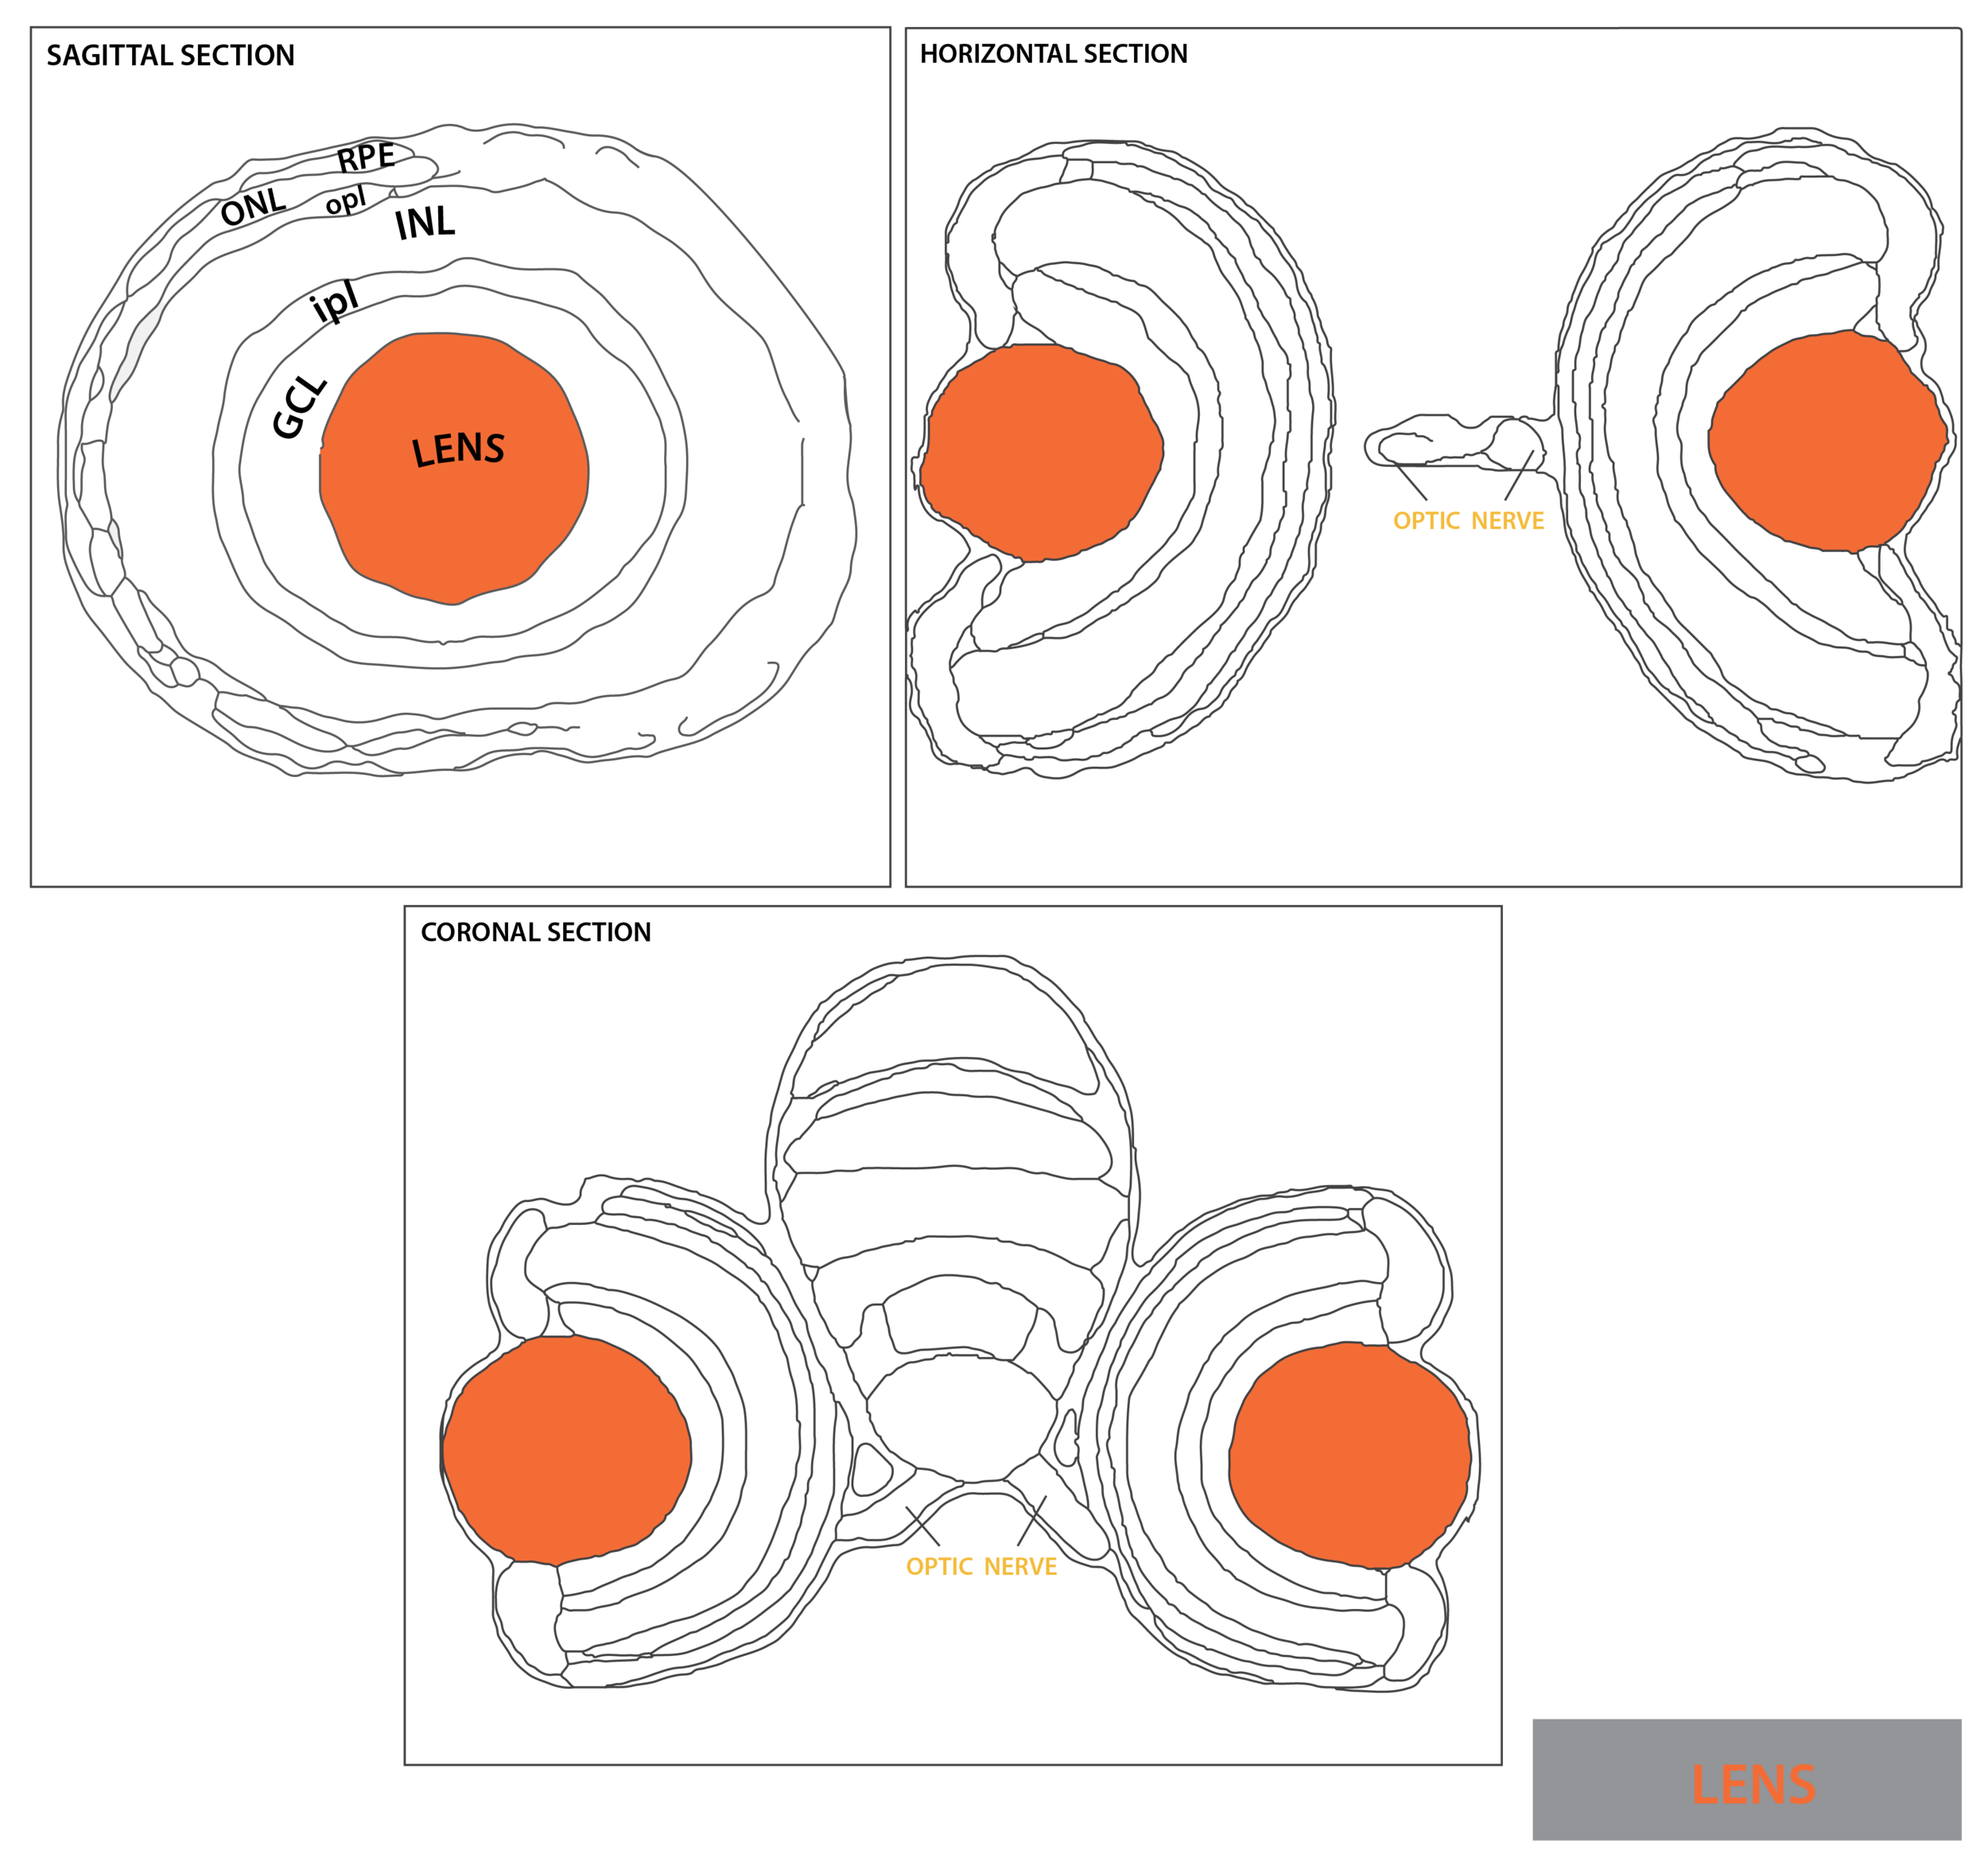 Schematic showing the position of the lens in sagittal, horizontal and coronal sections through the zebrafish brain.  Based on the anatomical segmentation of 3 day old zebrafish larval brain by Thomas Müller, Olaf Ronneberger, Wolfgang Driever and colleagues. For details see Ronneberger et al., Nat. Meth. 2012 and   http://vibez.informatik.uni-freiburg.de     Abbreviations: GCL, ganglion cell layer; INL, inner nuclear layer ; ipl, inner plexiform layer ; ONL, outer nuclear layer ; opl, outer plexiform layer; RPE, retinal pigmented epithelium.